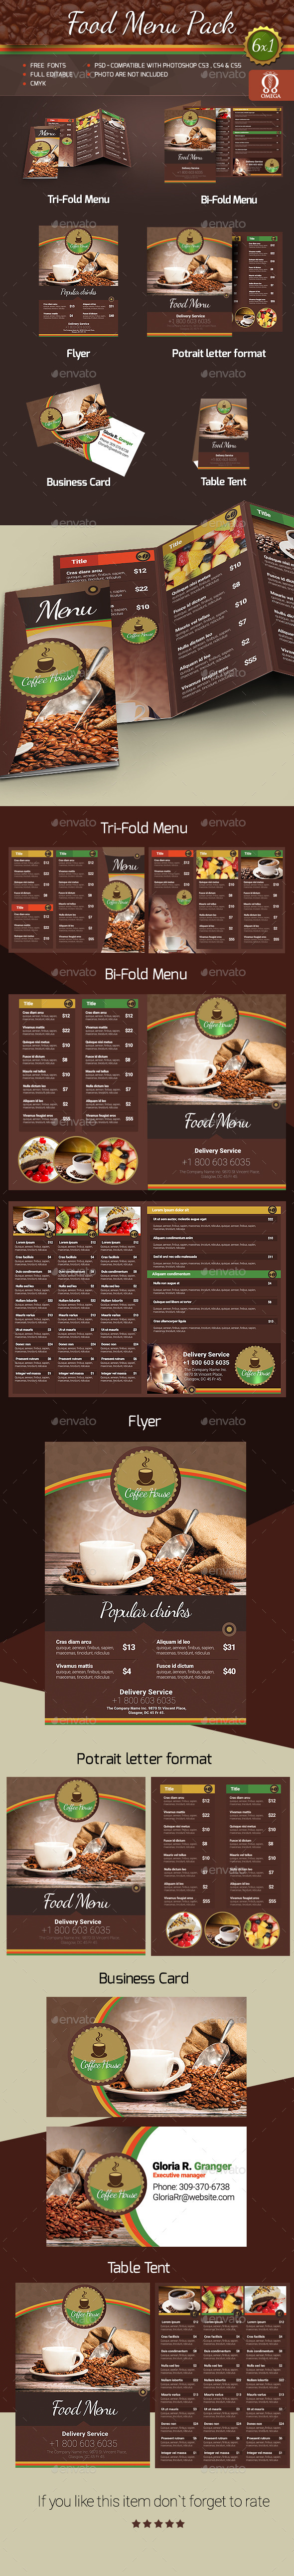 GraphicRiver Food Menu Pack 11323054